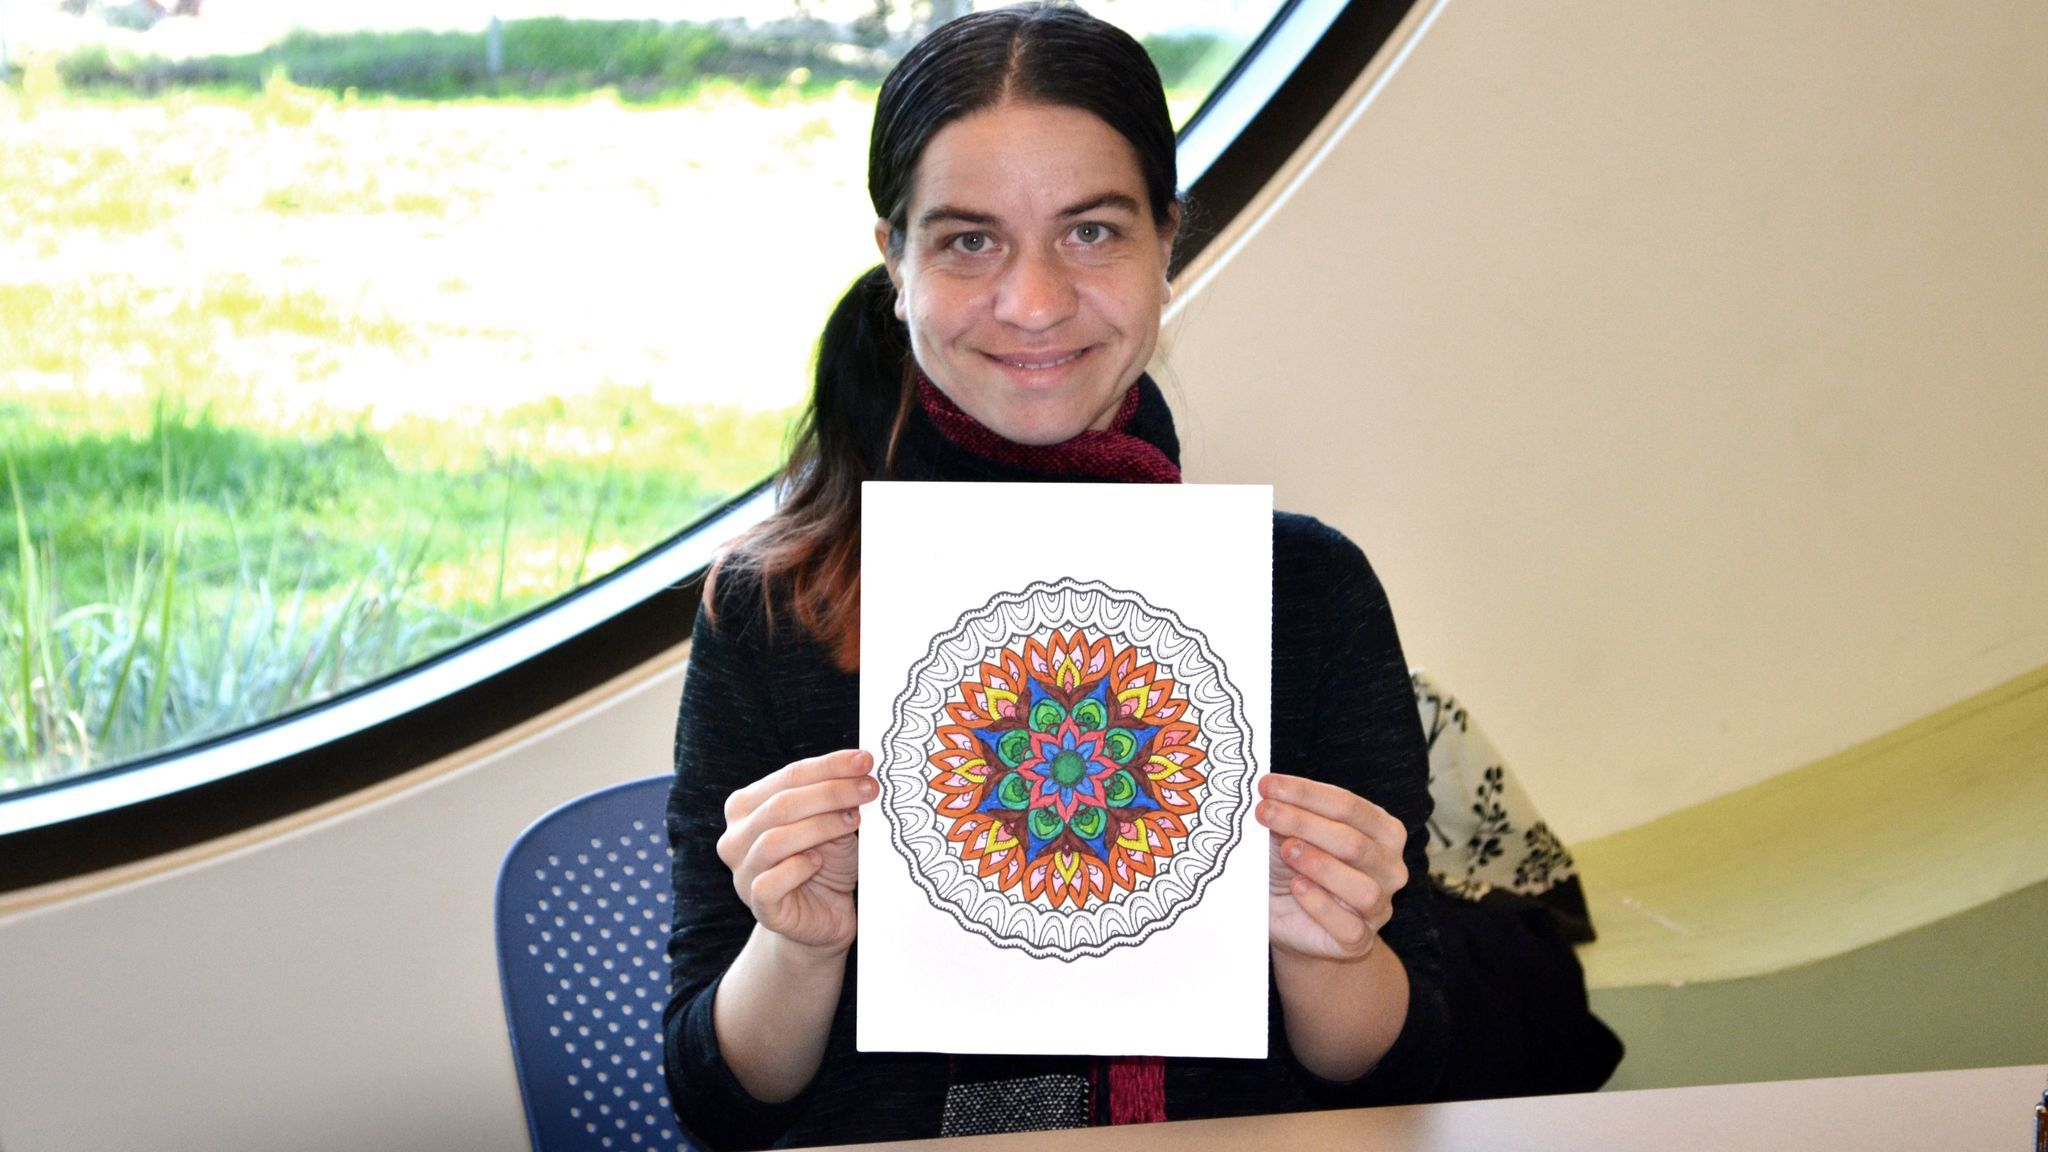 Haeli Greer, who heads up the library's Color Me Calm adult coloring club, shows the mandala she is working on.